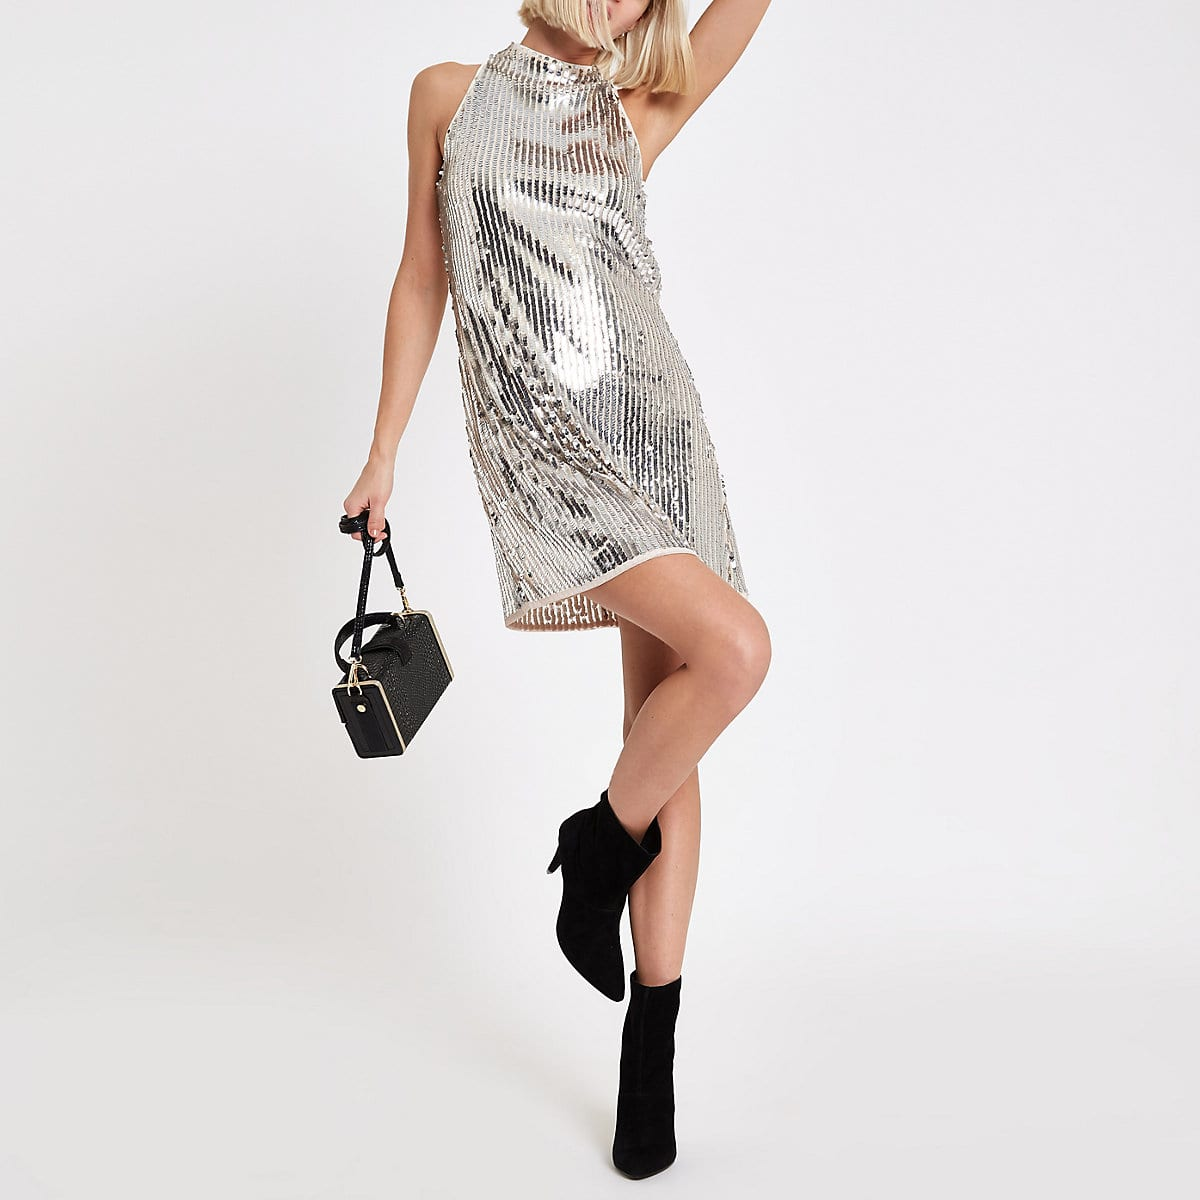 d847cbd36e81 Dress to Impress this Christmas and New Year s Eve - DublinTown